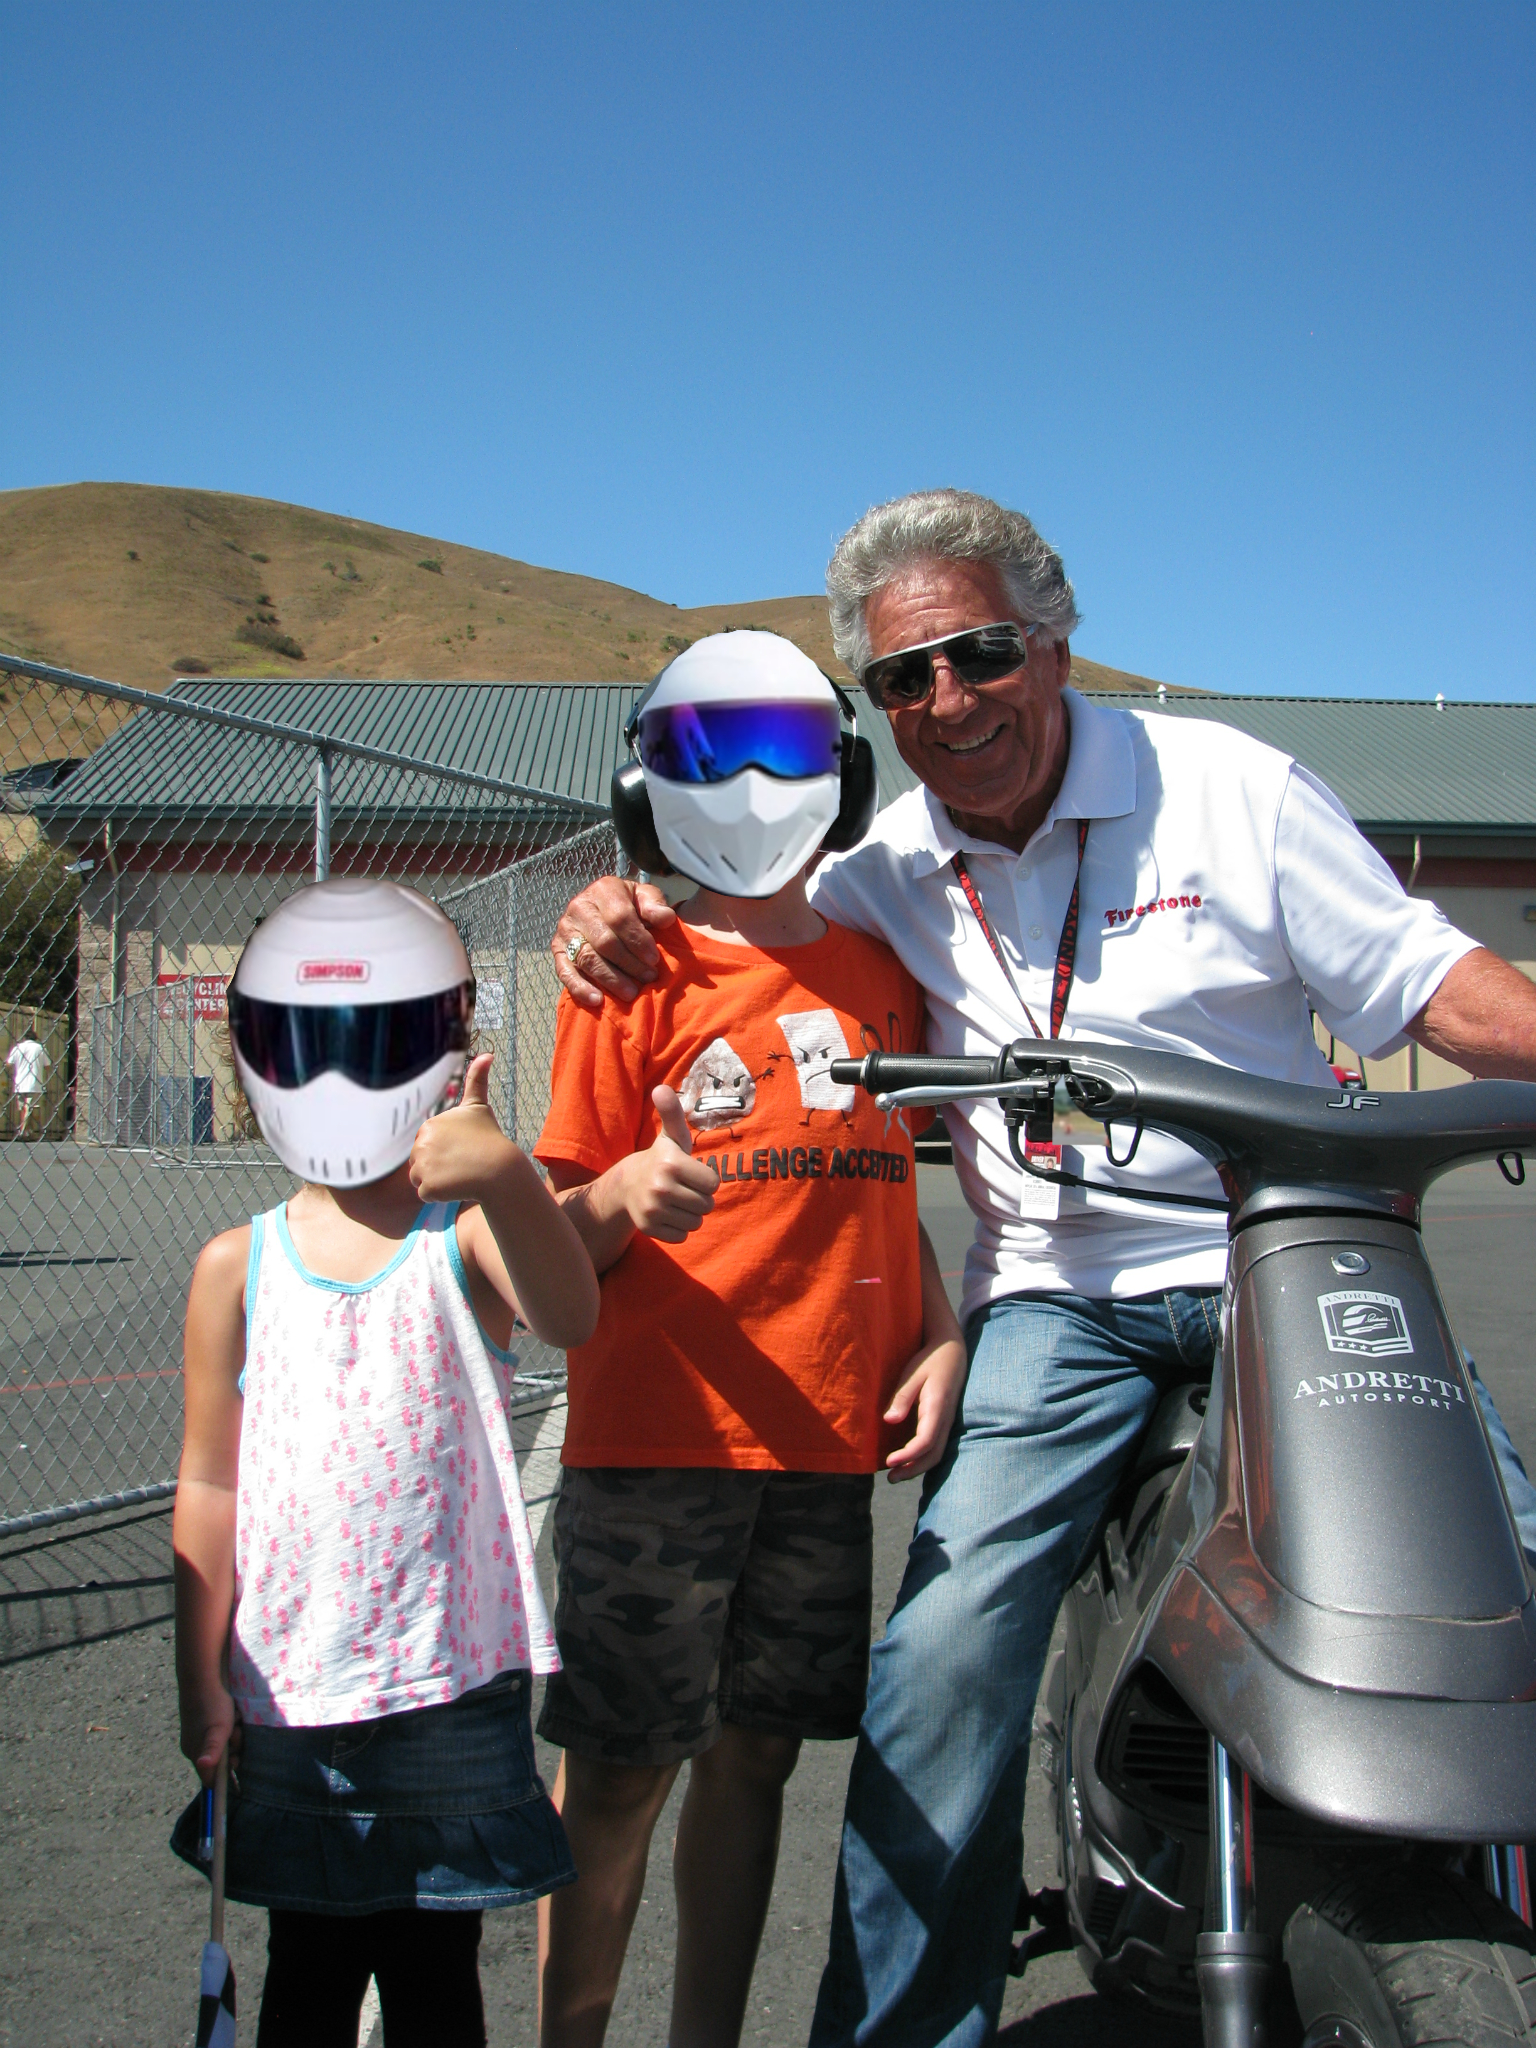 The kids with Mario Andretti